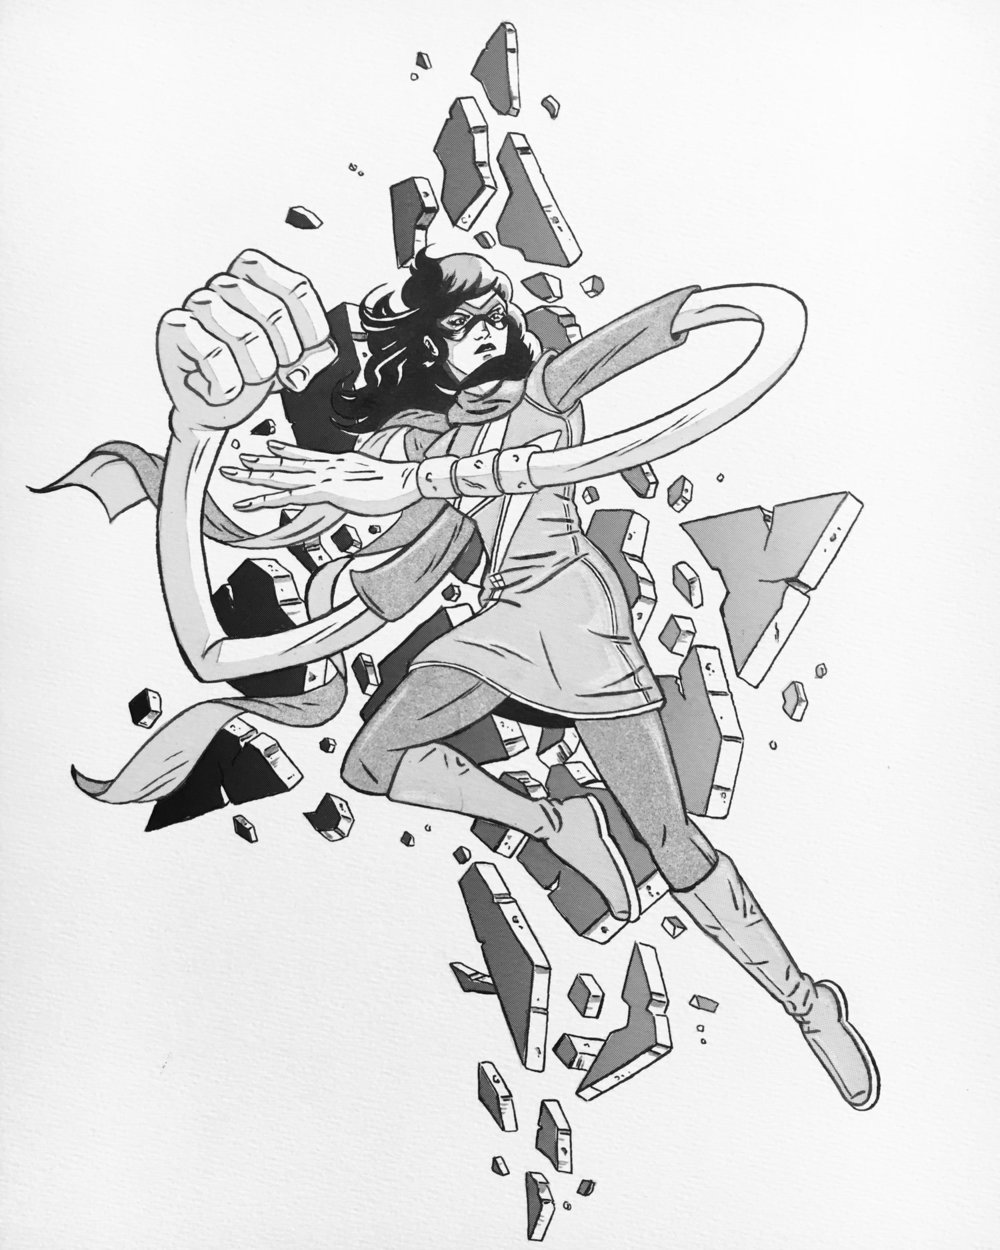 From my own personal collection.  A Ms. Marvel commission Sean made for me, which hangs on my wall above my desk.